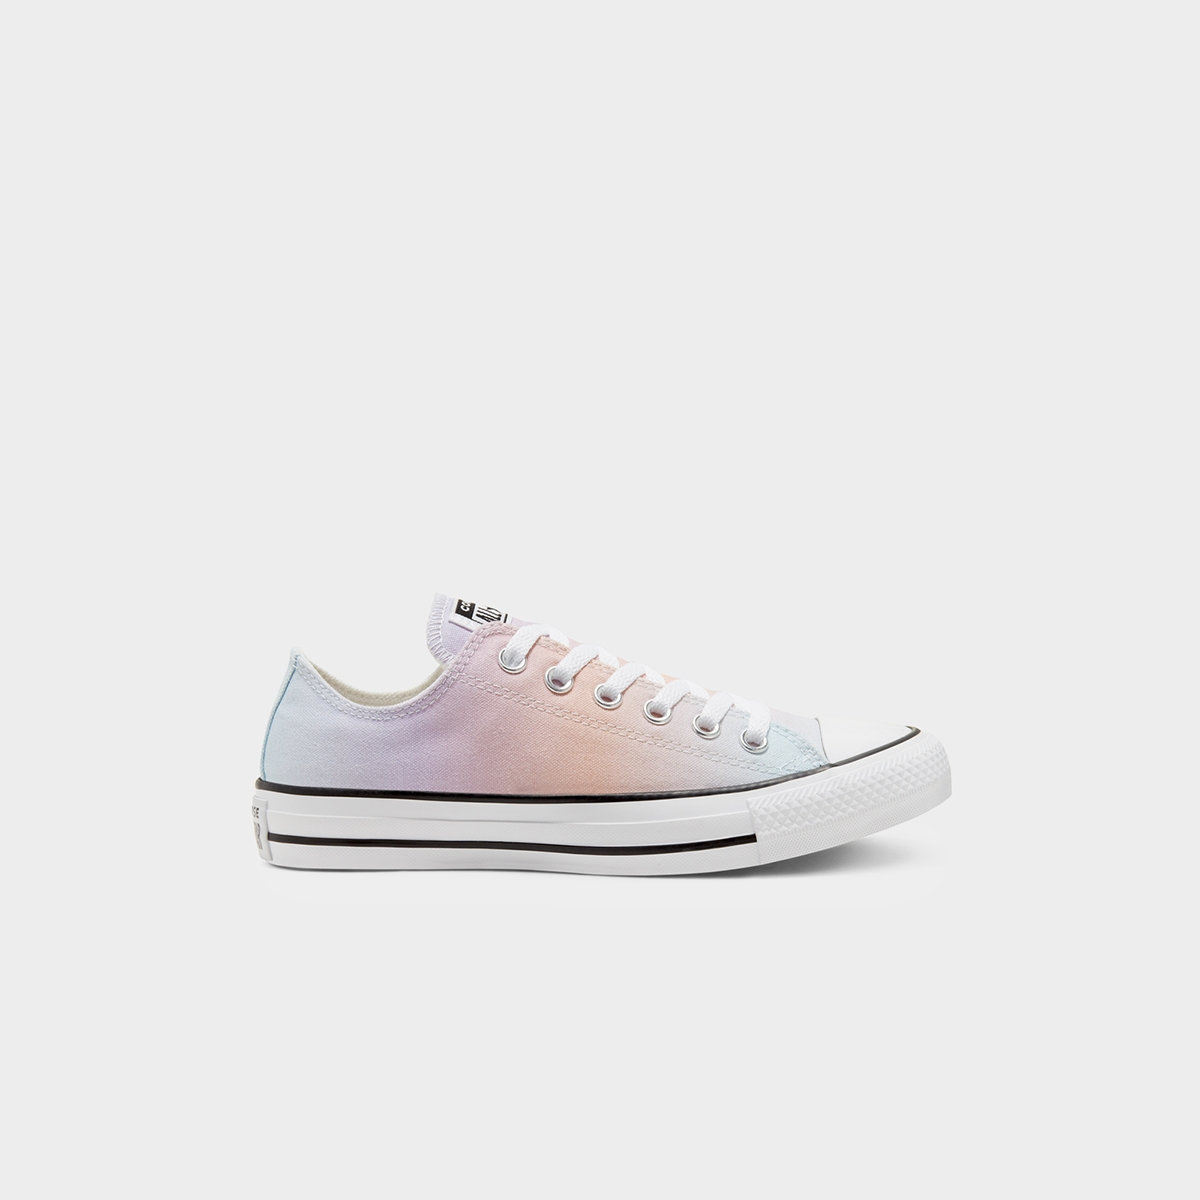 Converse Chuck Taylor All Star Ox Canvas Sneakers Multi